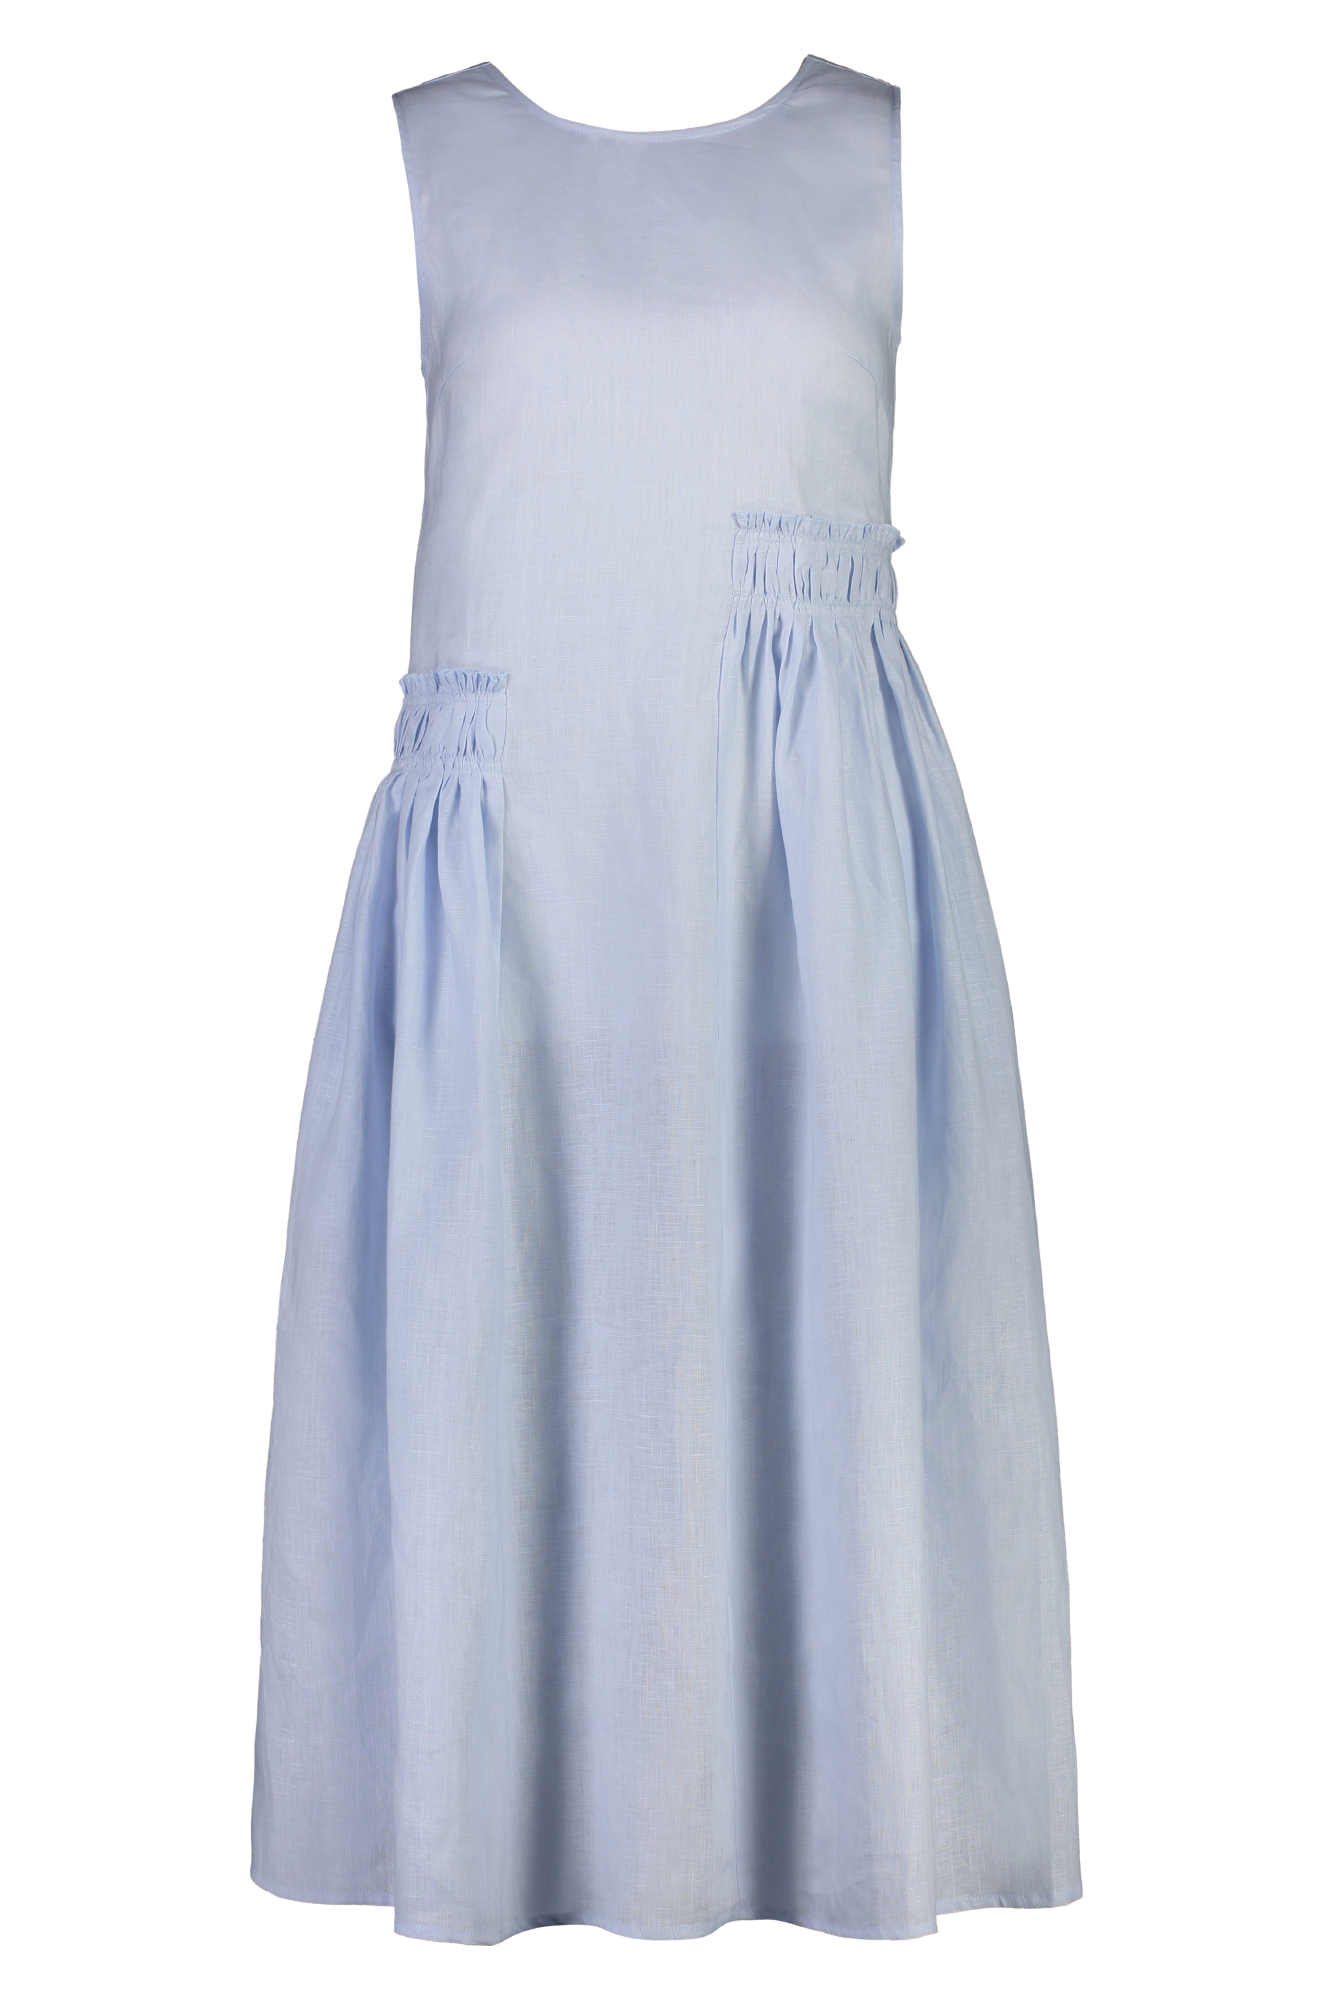 Balancing Act Dress in Sky Blue - hej hej